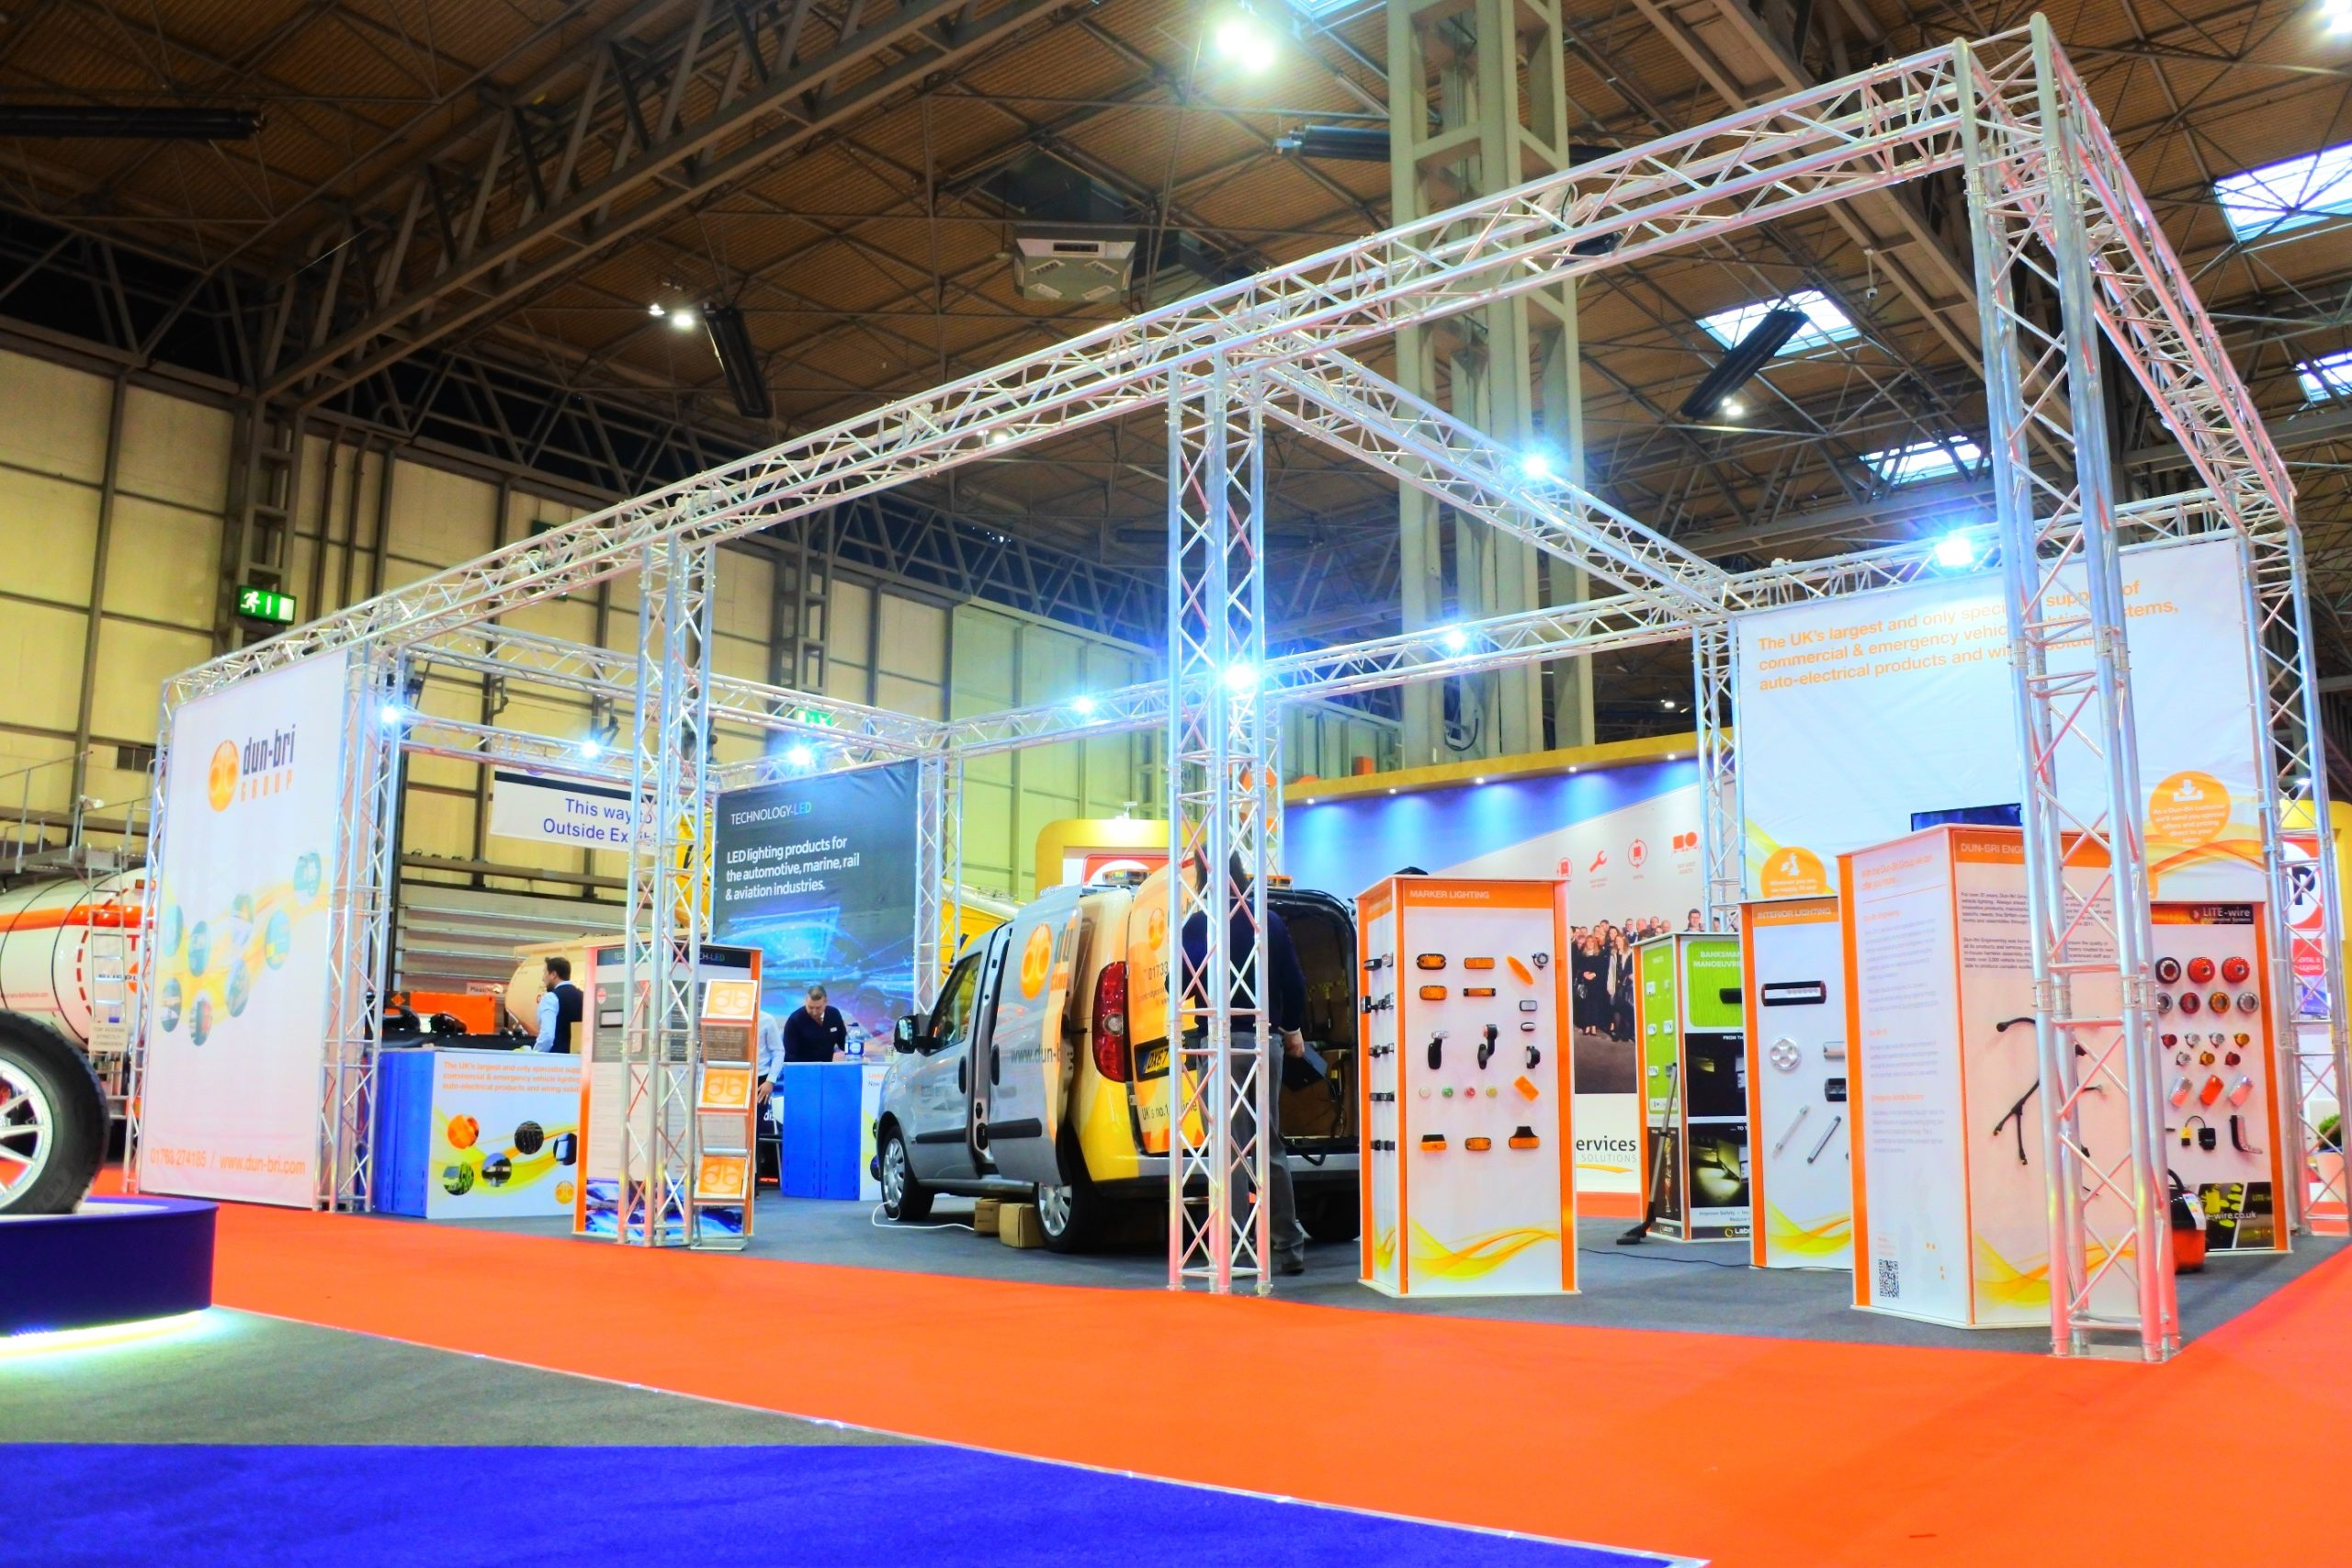 Dun-Bri Group Exhibition Stand at the NEC, Birmingham